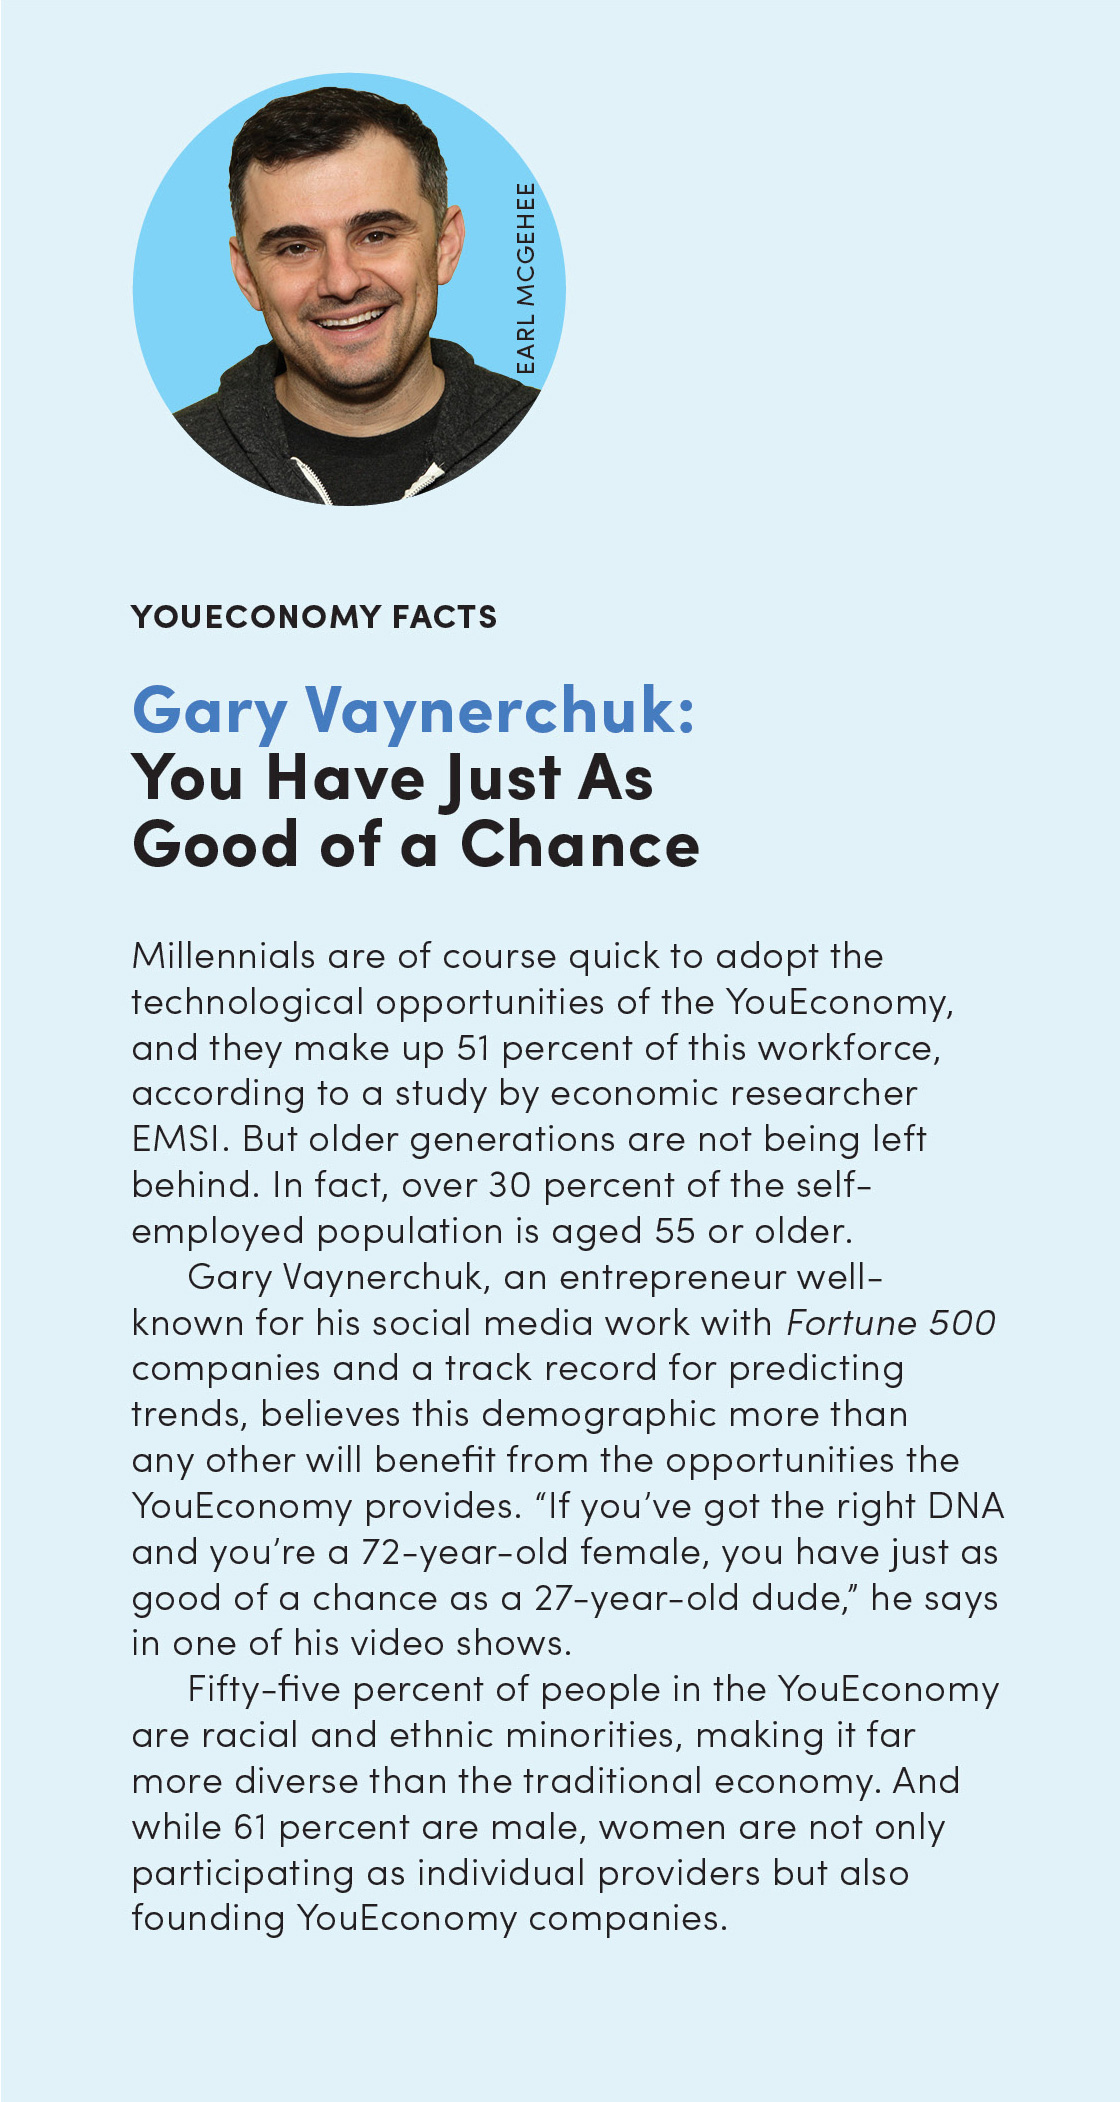 Introducing the YouEconomy